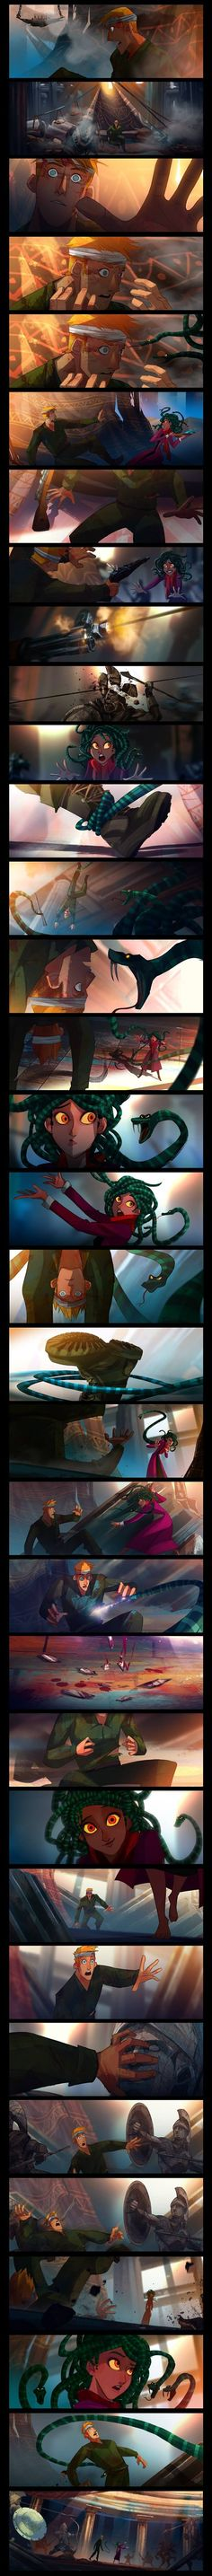 Medusa (Part 2) by JUN CHIU Illustration<<<He can't be turned to stone and in this Medusa is actually adorable